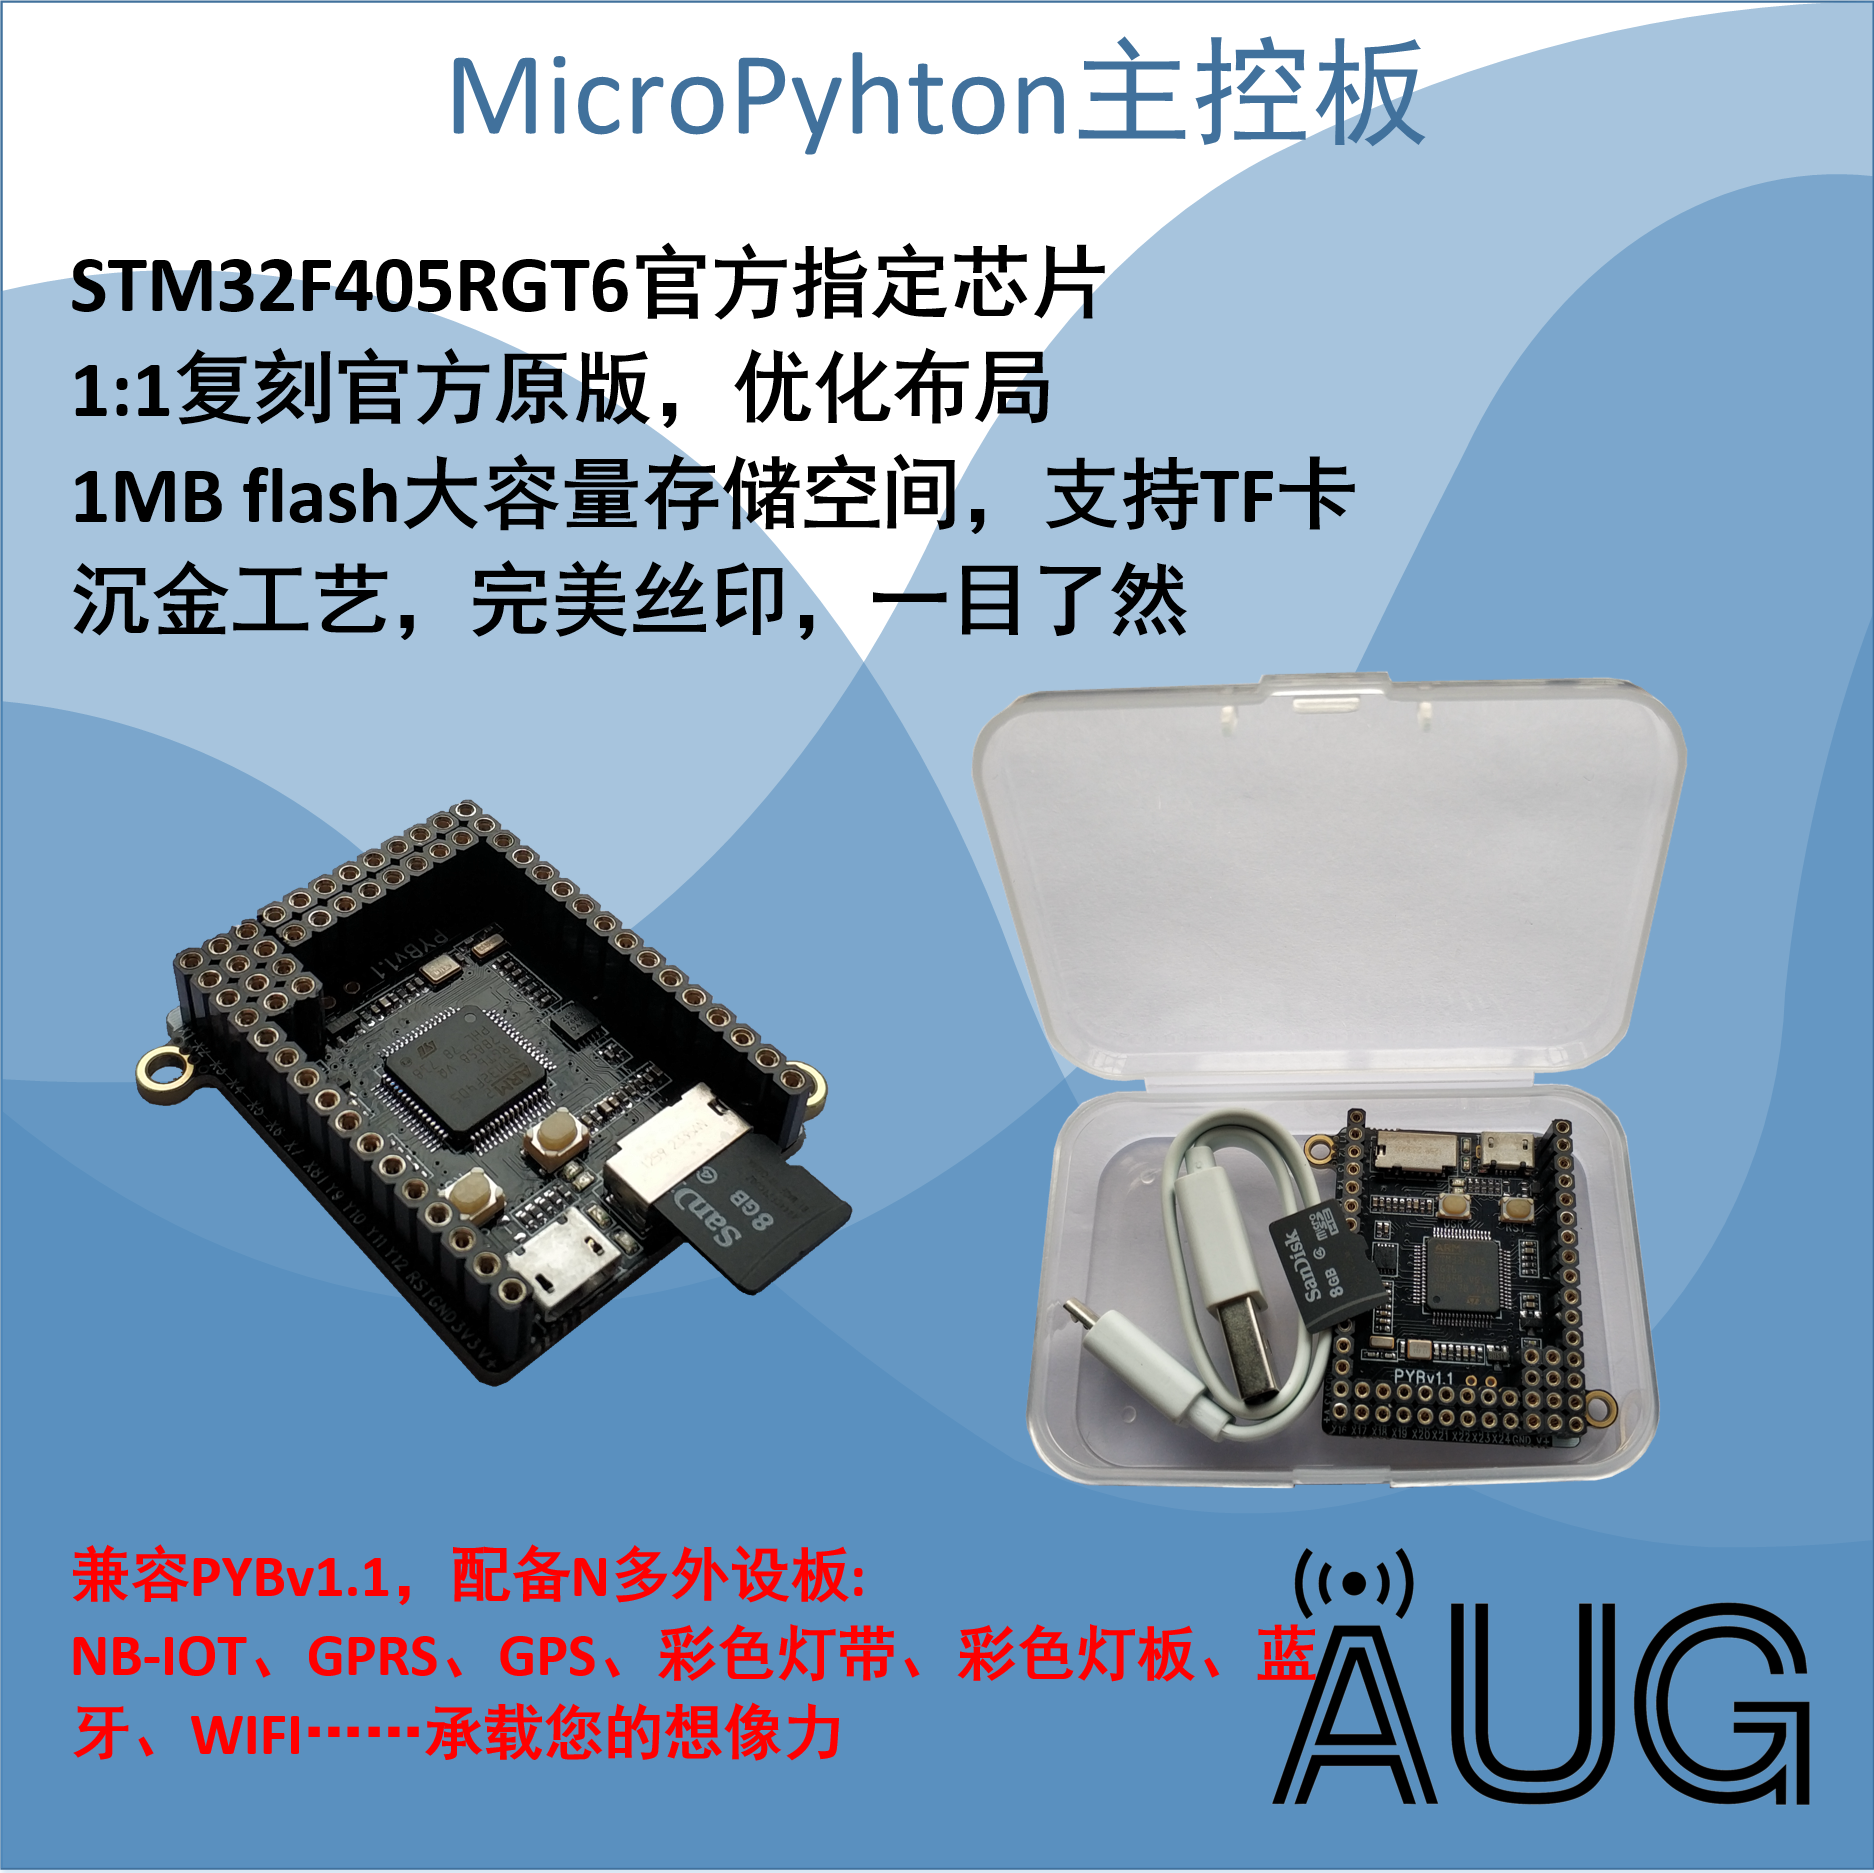 US $25 0 |MicroPython Development Board PYBoardv1 1 v1 0 STM32F405 Pyhton3  OpenMV-in Air Conditioner Parts from Home Appliances on Aliexpress com |